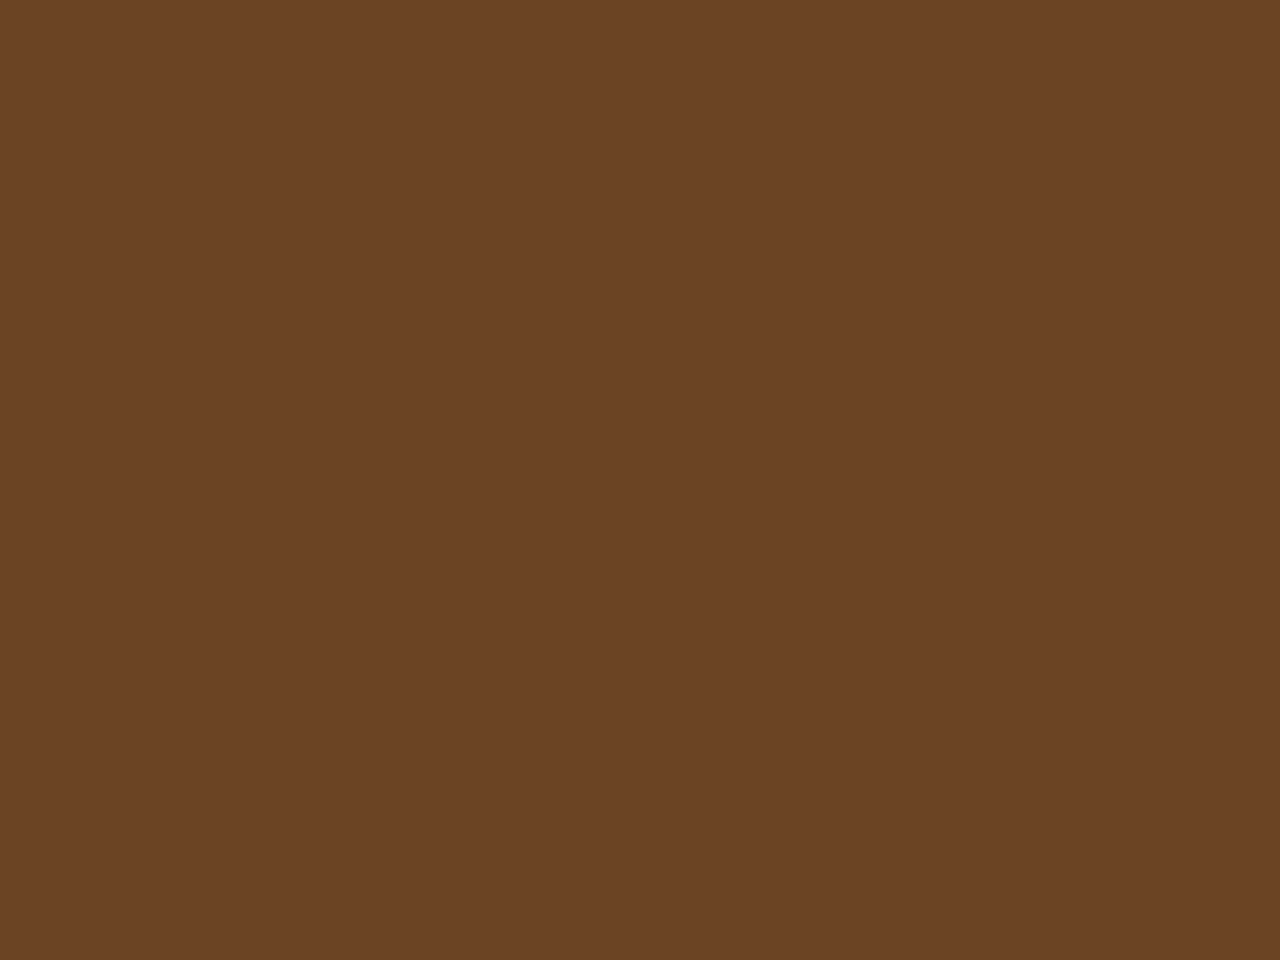 1280x960 Brown-nose Solid Color Background